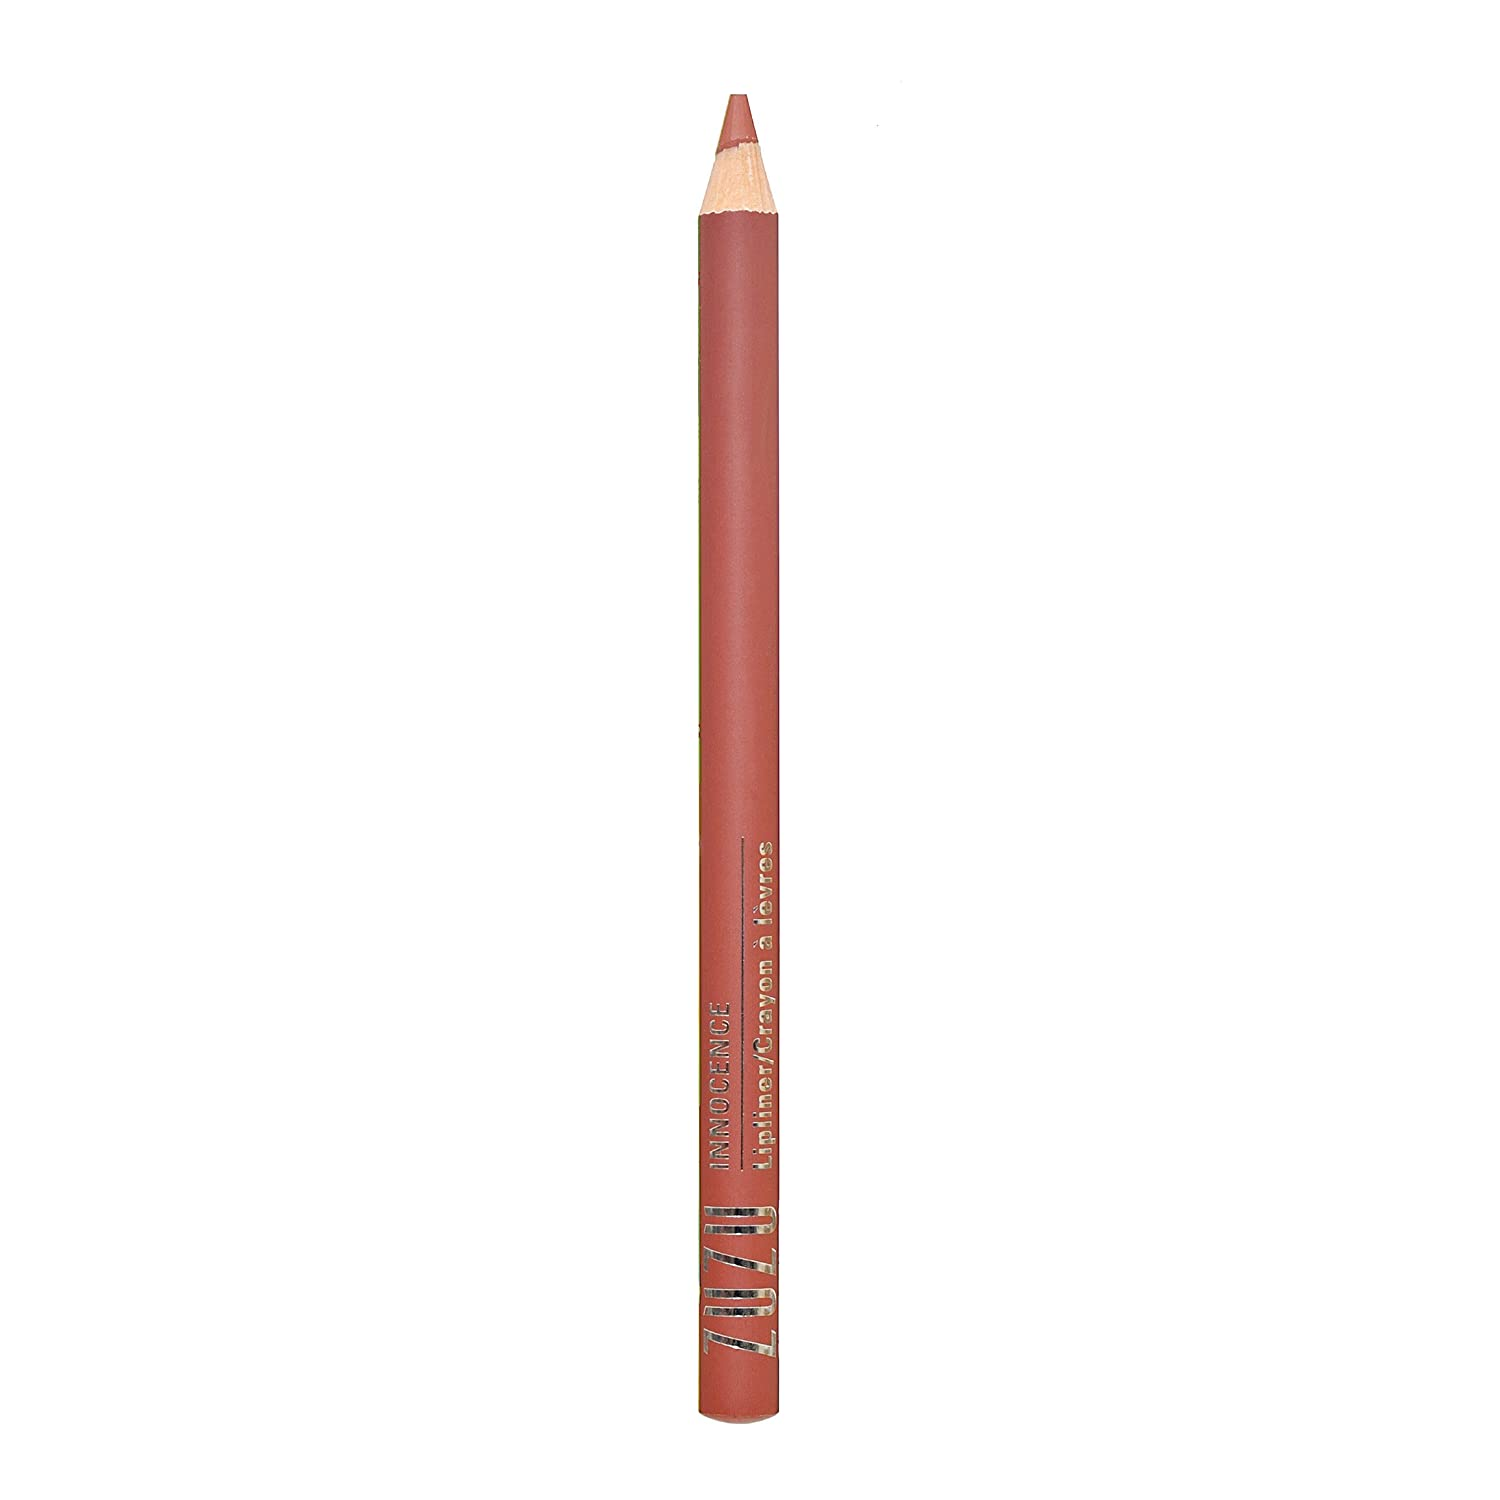 Zuzu Luxe Lipliner (Innocence)0.04 oz, richly pigmented and long lasting, Infused with Jojoba Seed Oil,Aloe for ultra hydrated lips. Natural, Paraben Free, Vegan, Gluten-free,Cruelty-free, Non GMO.